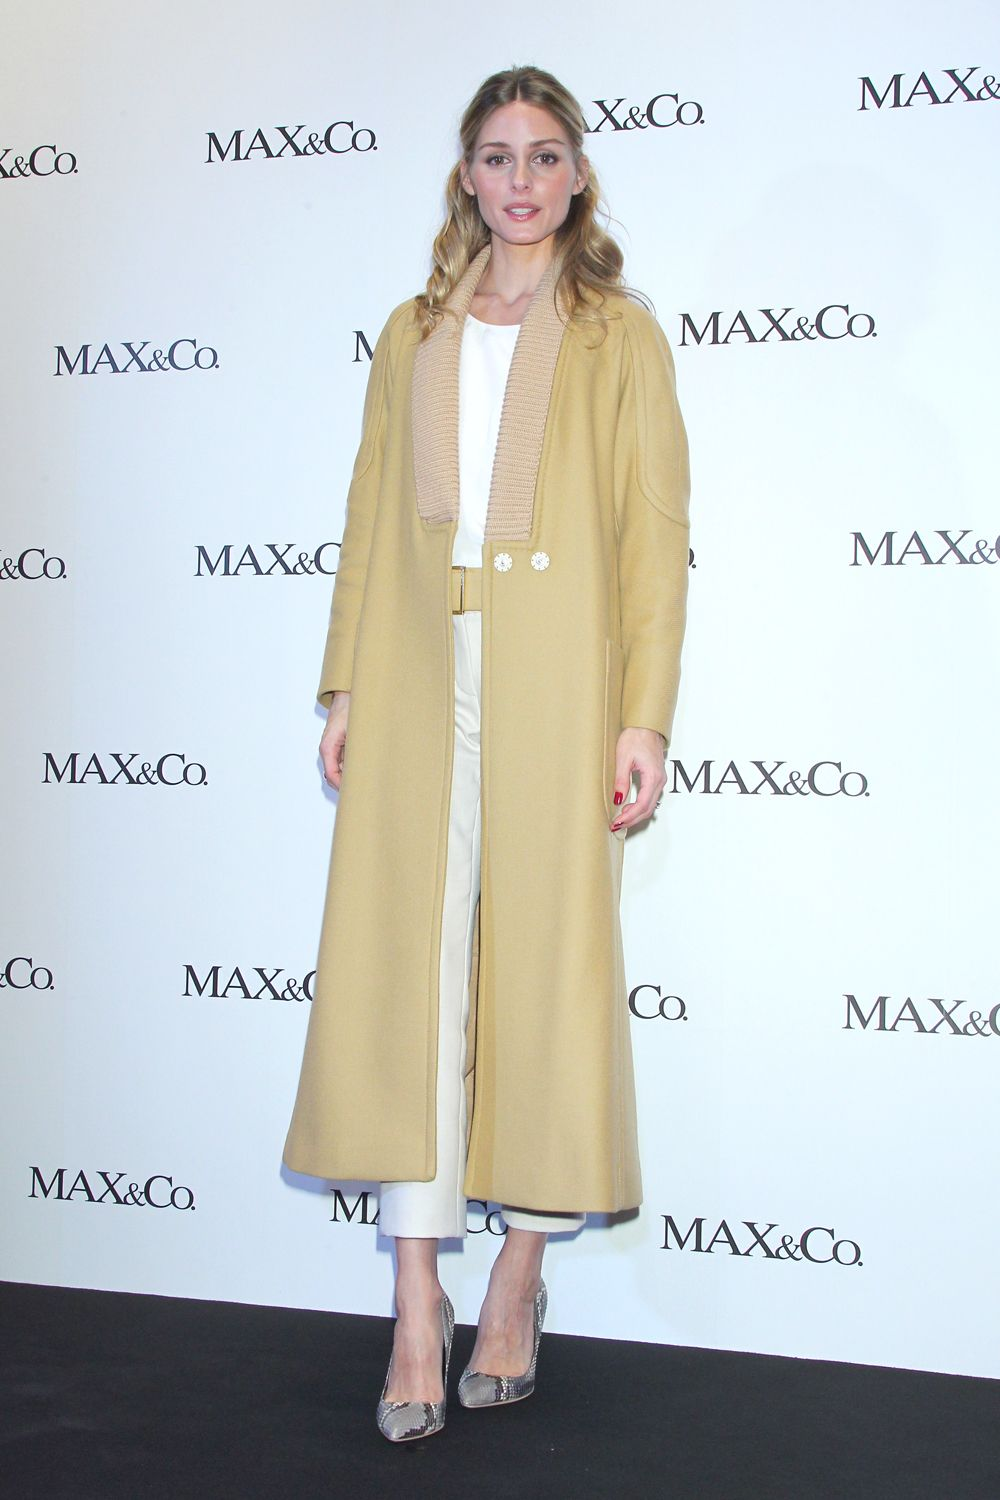 You can always trust on Olivia Palermo for a sartorially savvy outfit, and this beauty is no exception. Dressed in a camel midi coat, tailored separates and a pair of classic snakeskin courts, the stylish socialite nails autumnal dressing.